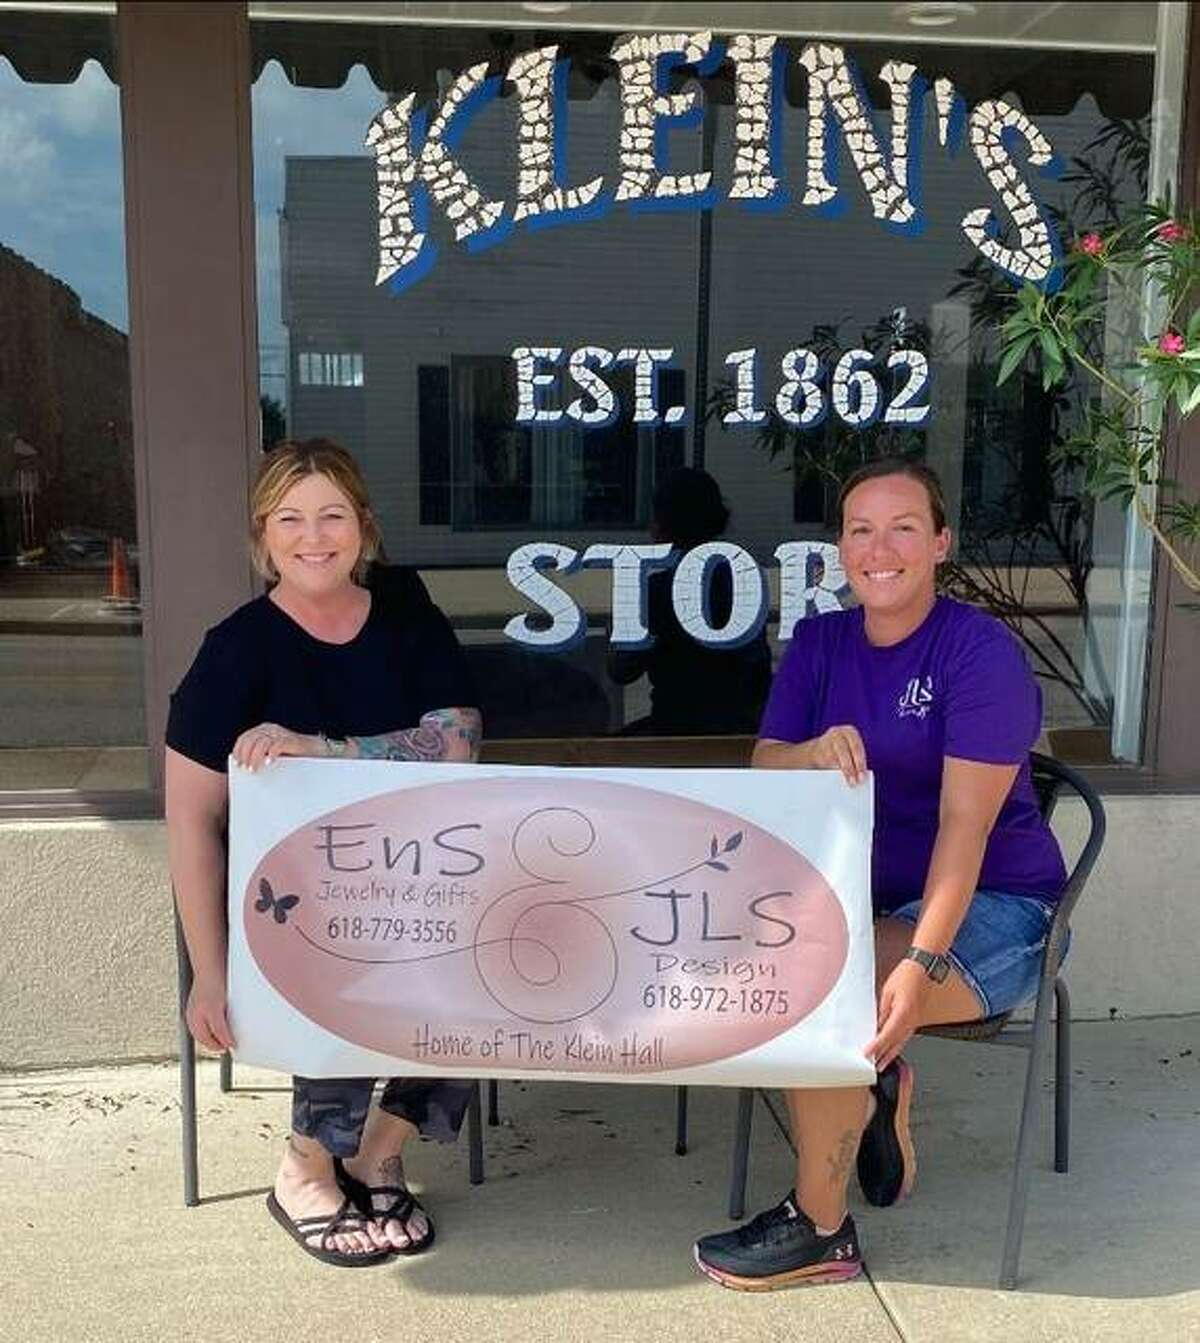 Aimee Long and Jamie Slaten are preparing to open The Co-Op in the former Klein Candy Store in Bethalto.